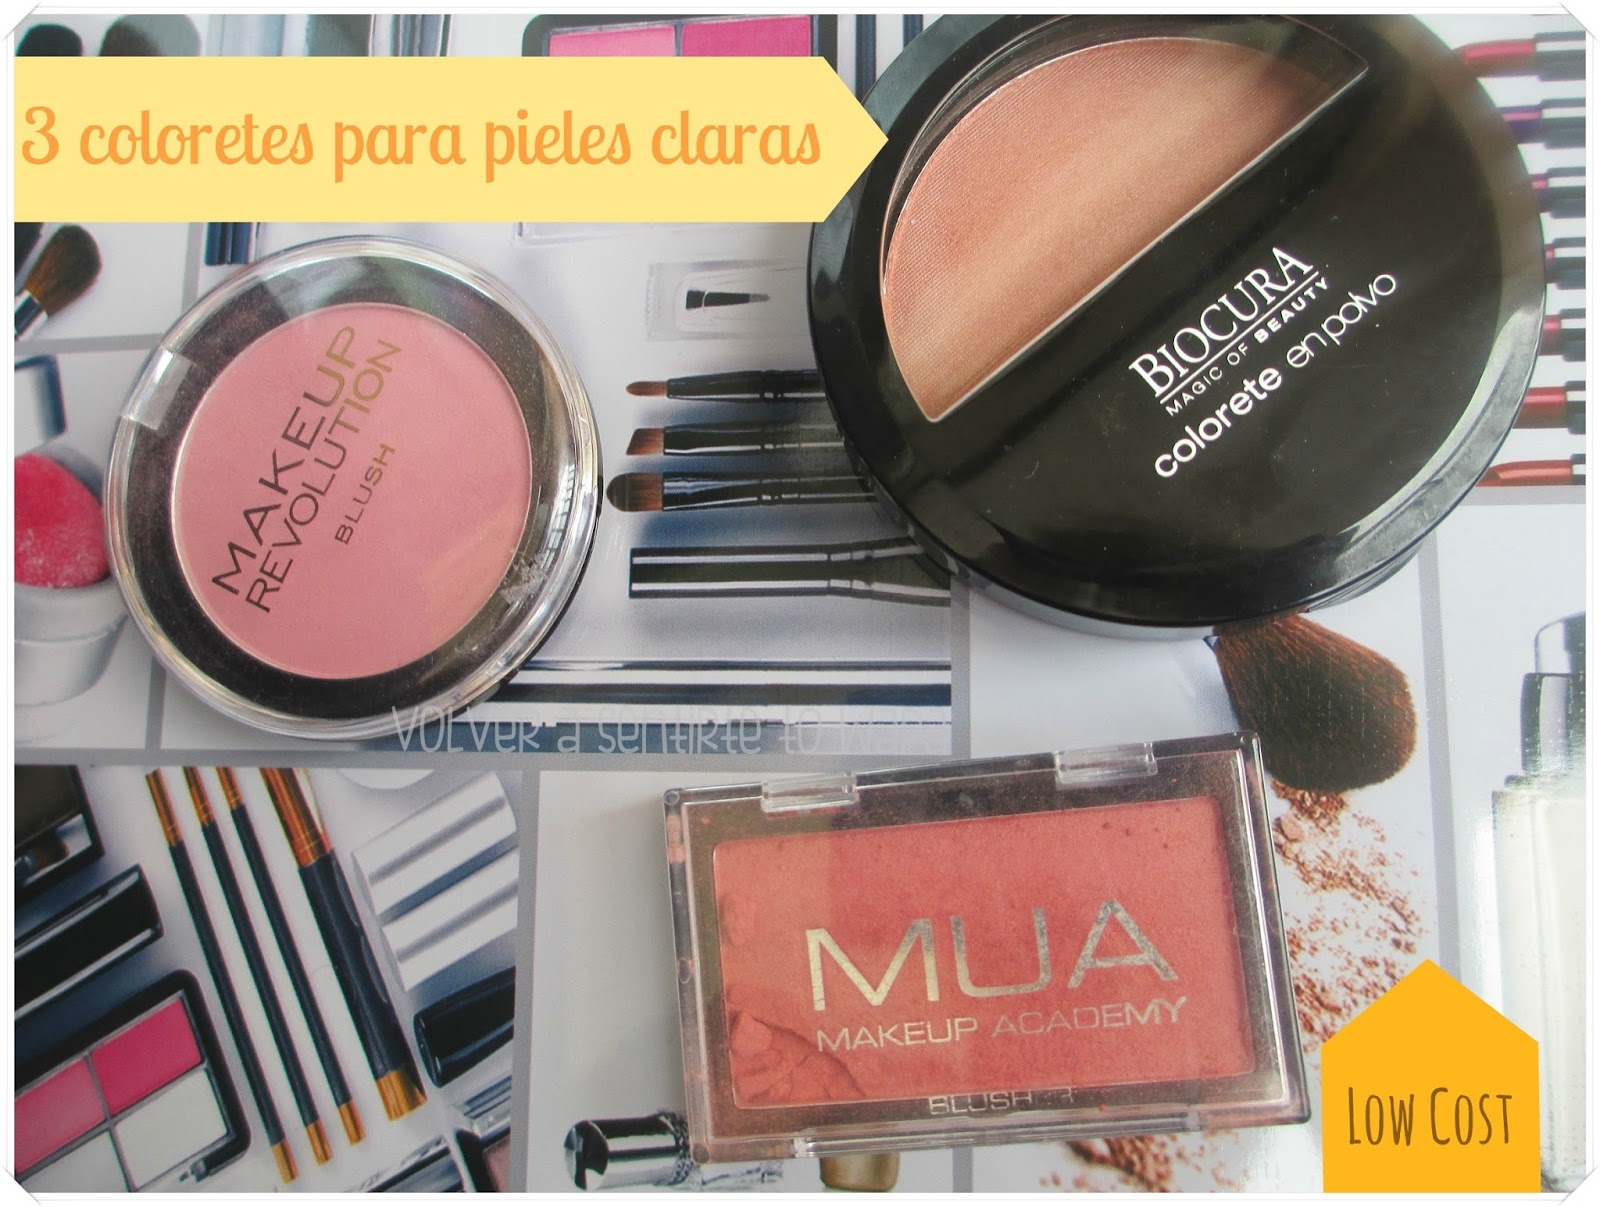 3 coloretes low cost para pieles claras